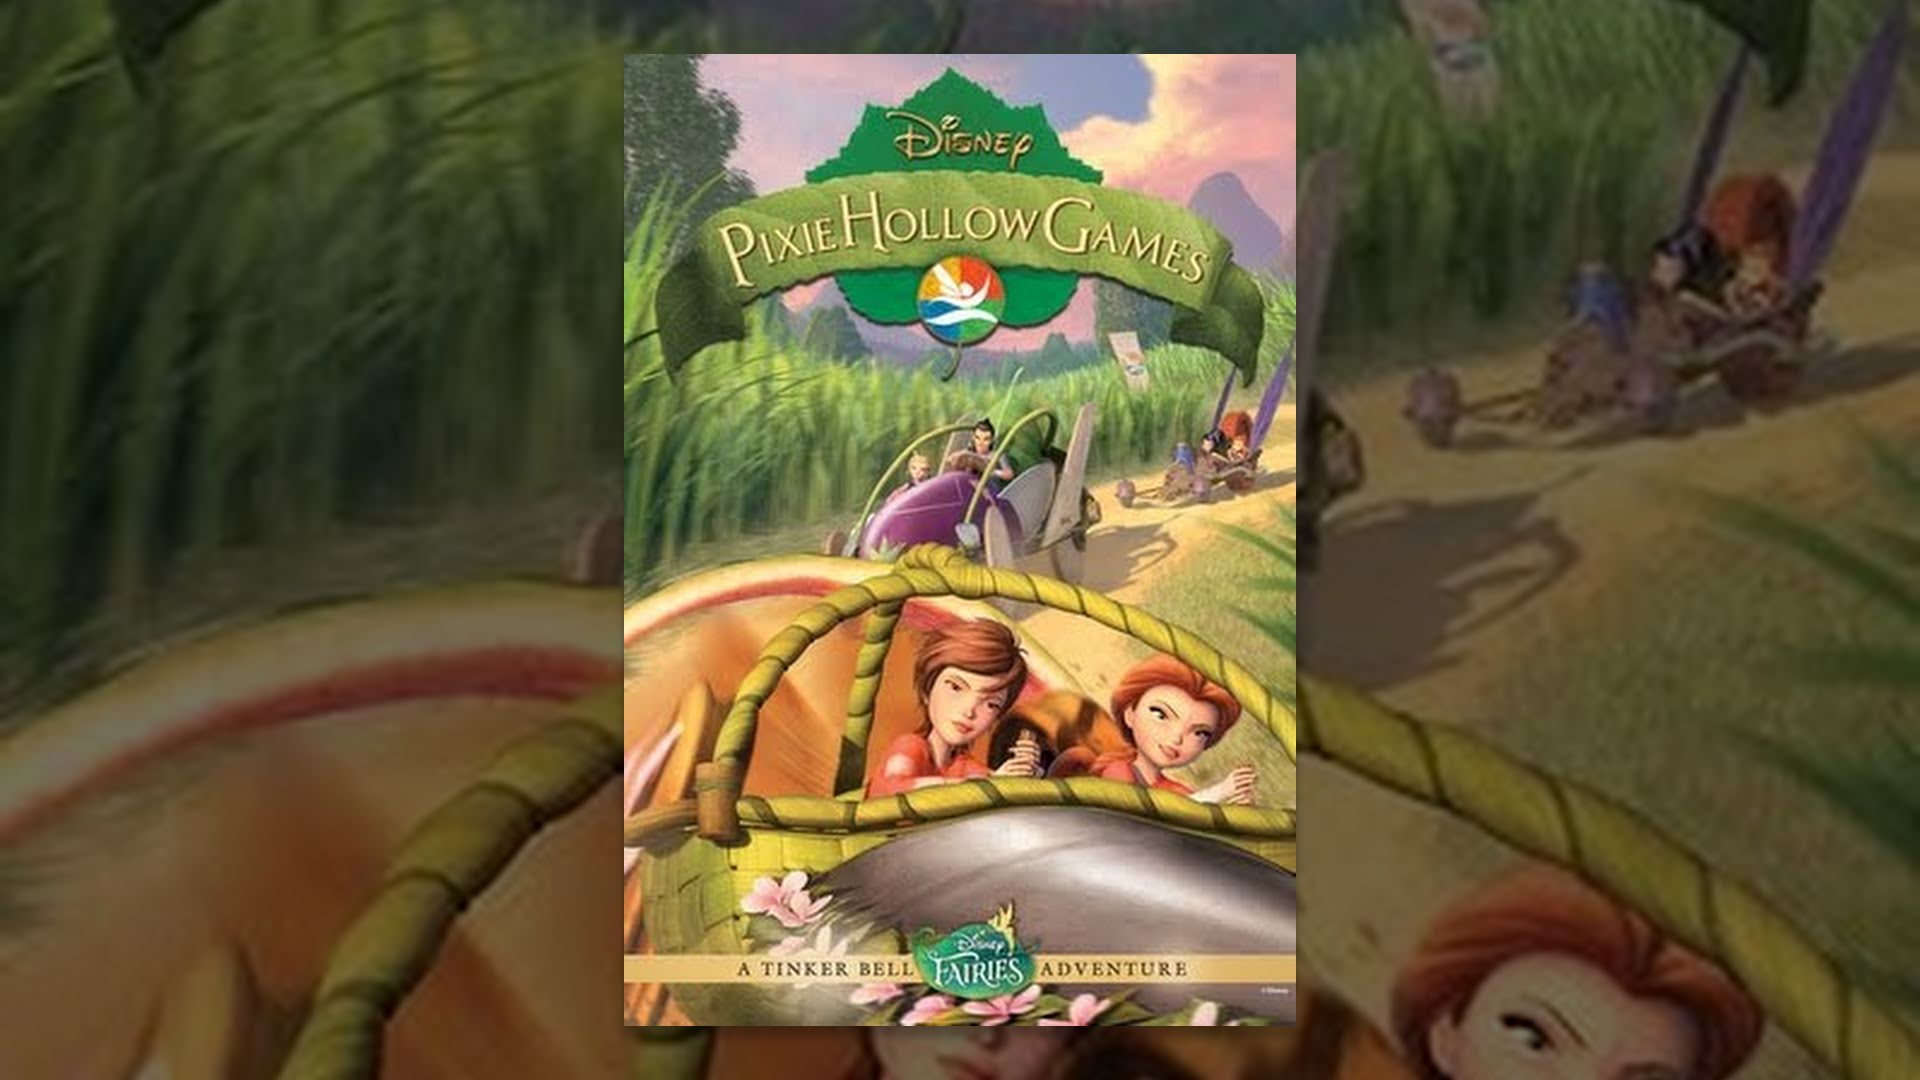 tinkerbell pixie hollow games full movie download